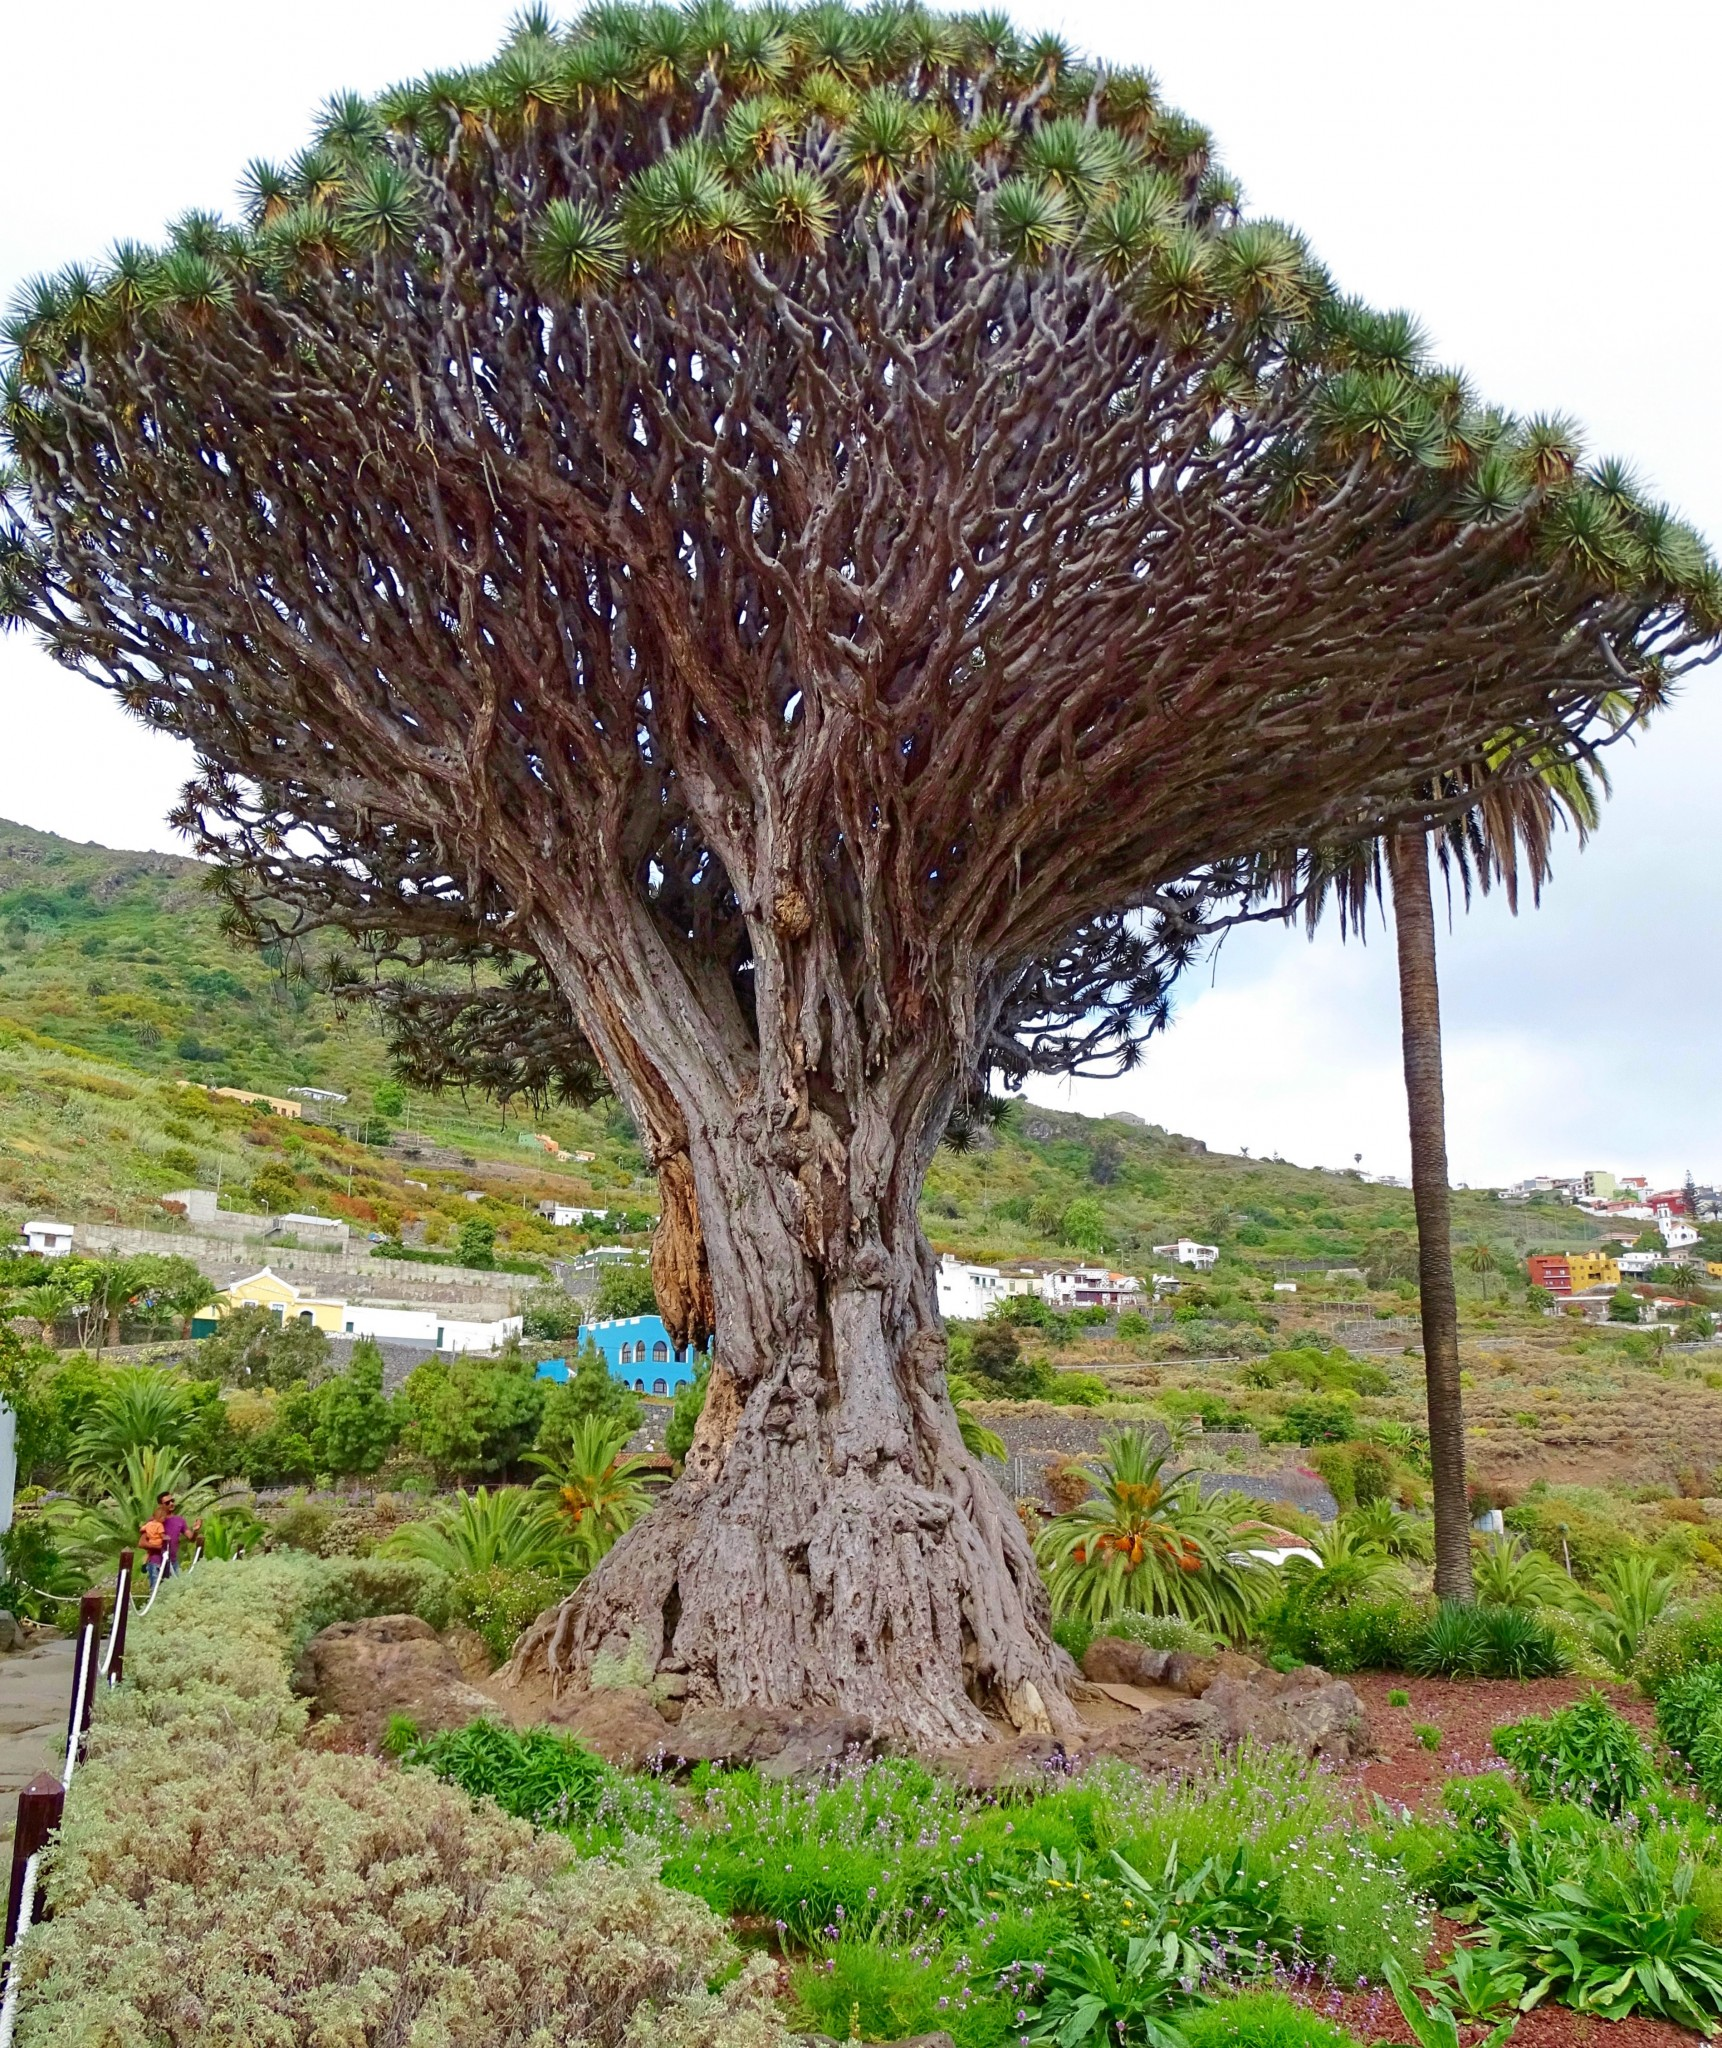 Parque del Drago, Dragon Tree